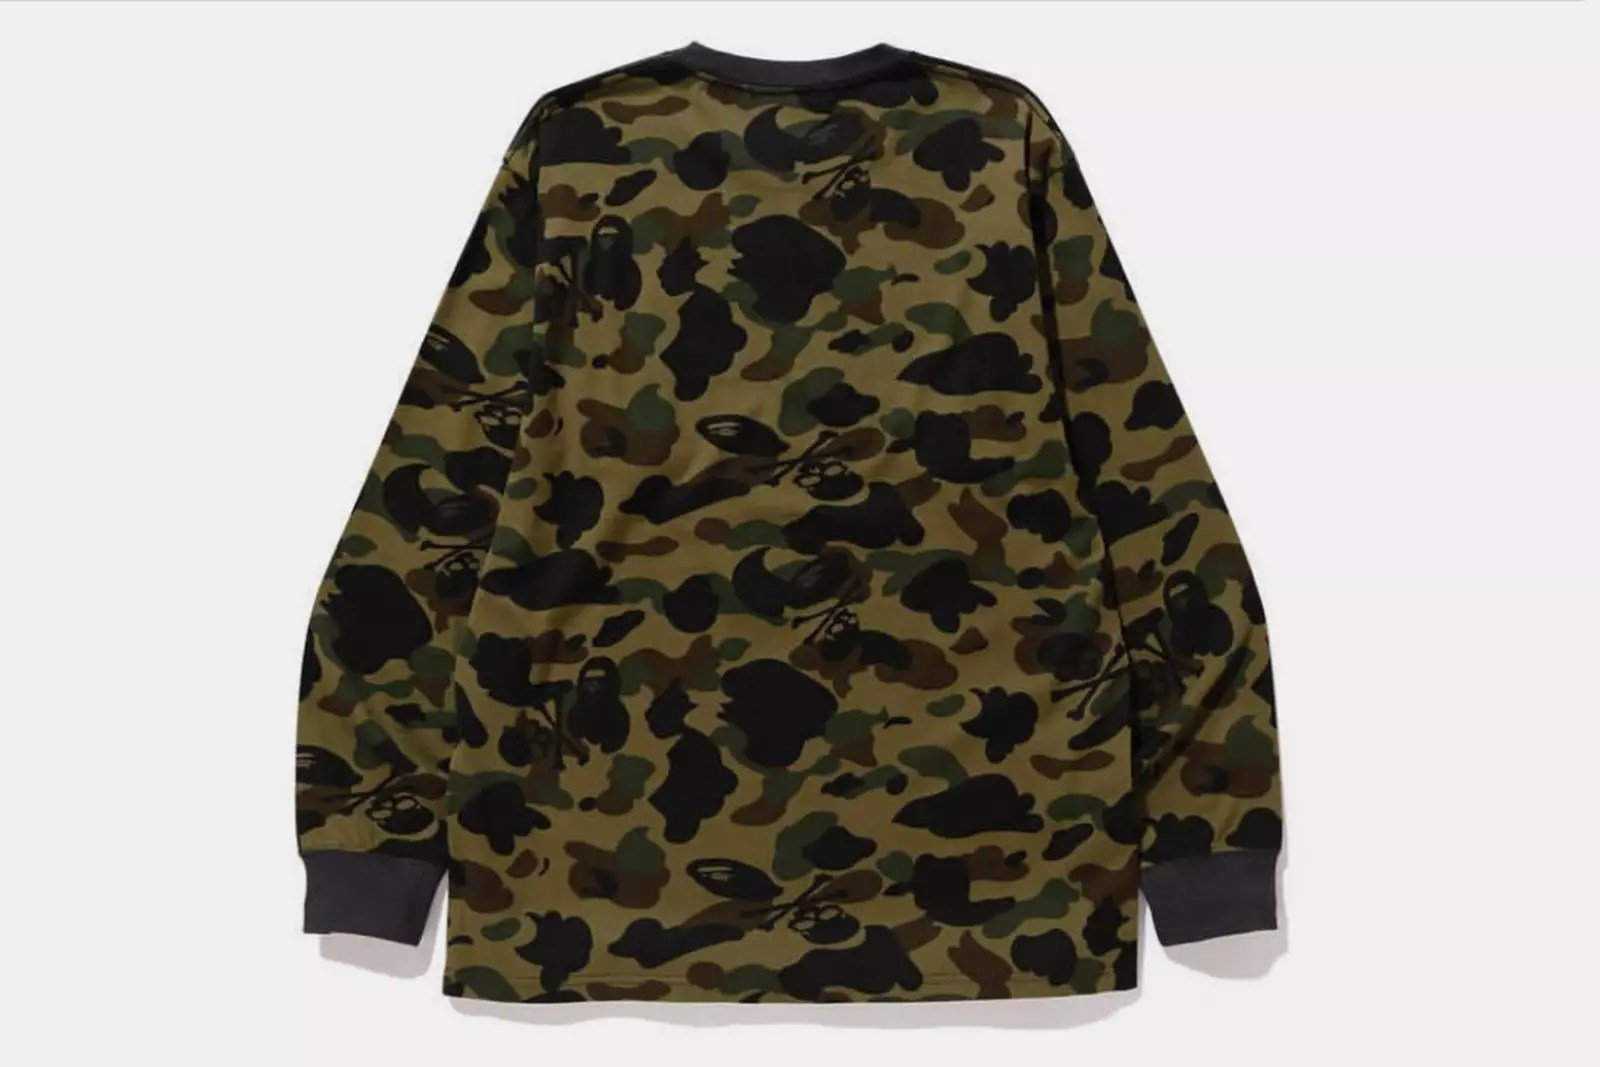 mastermind JAPAN x BAPE Hong Kong Exclusive SS19: View it Here